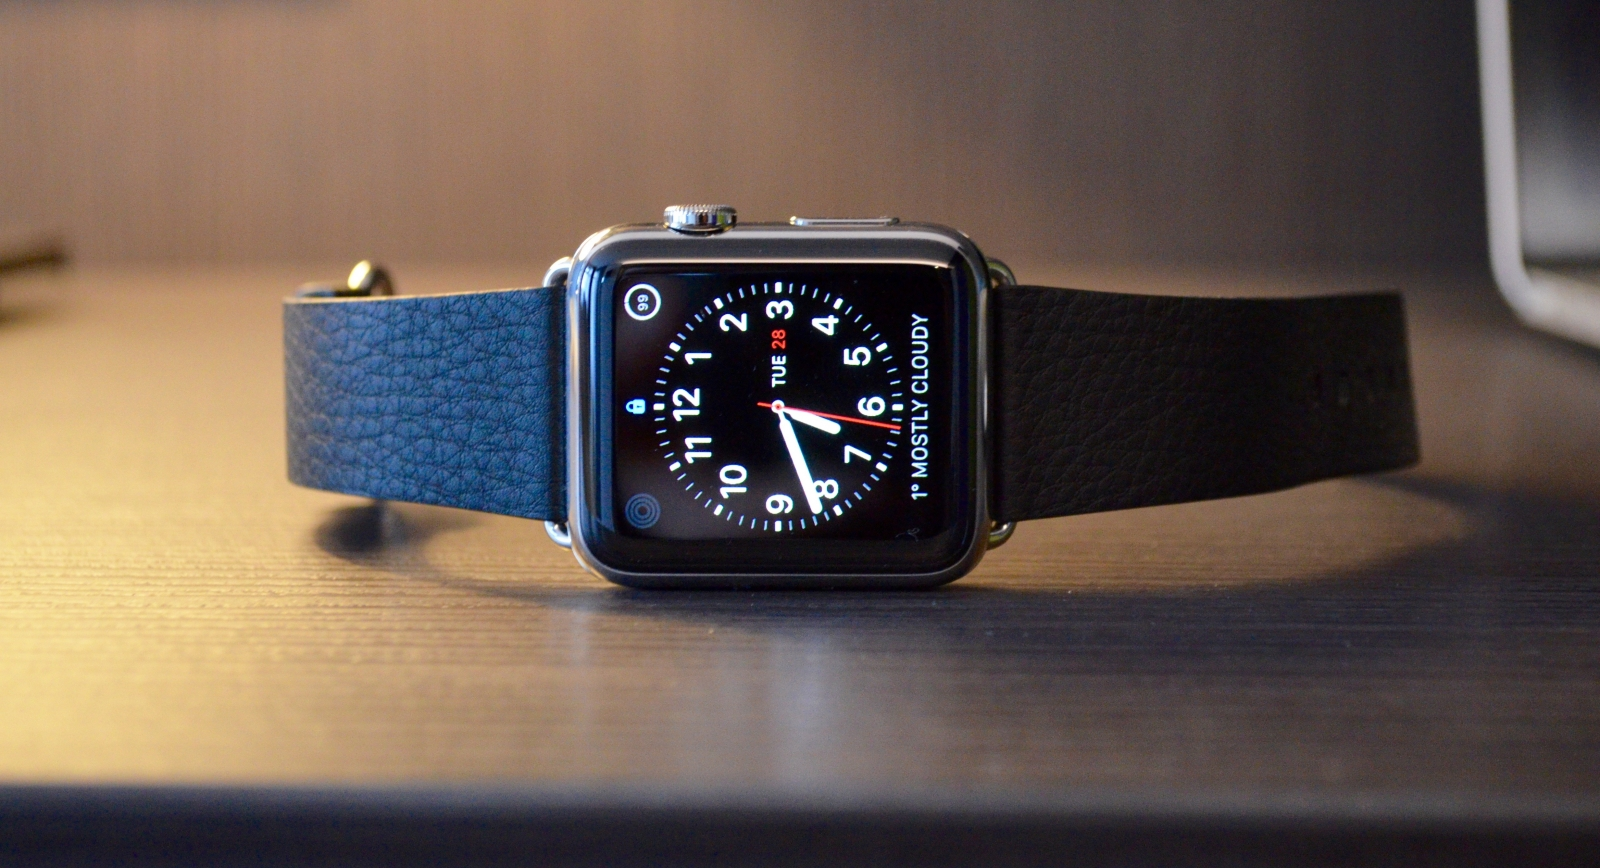 Apple Watch could help predict epileptic seizures